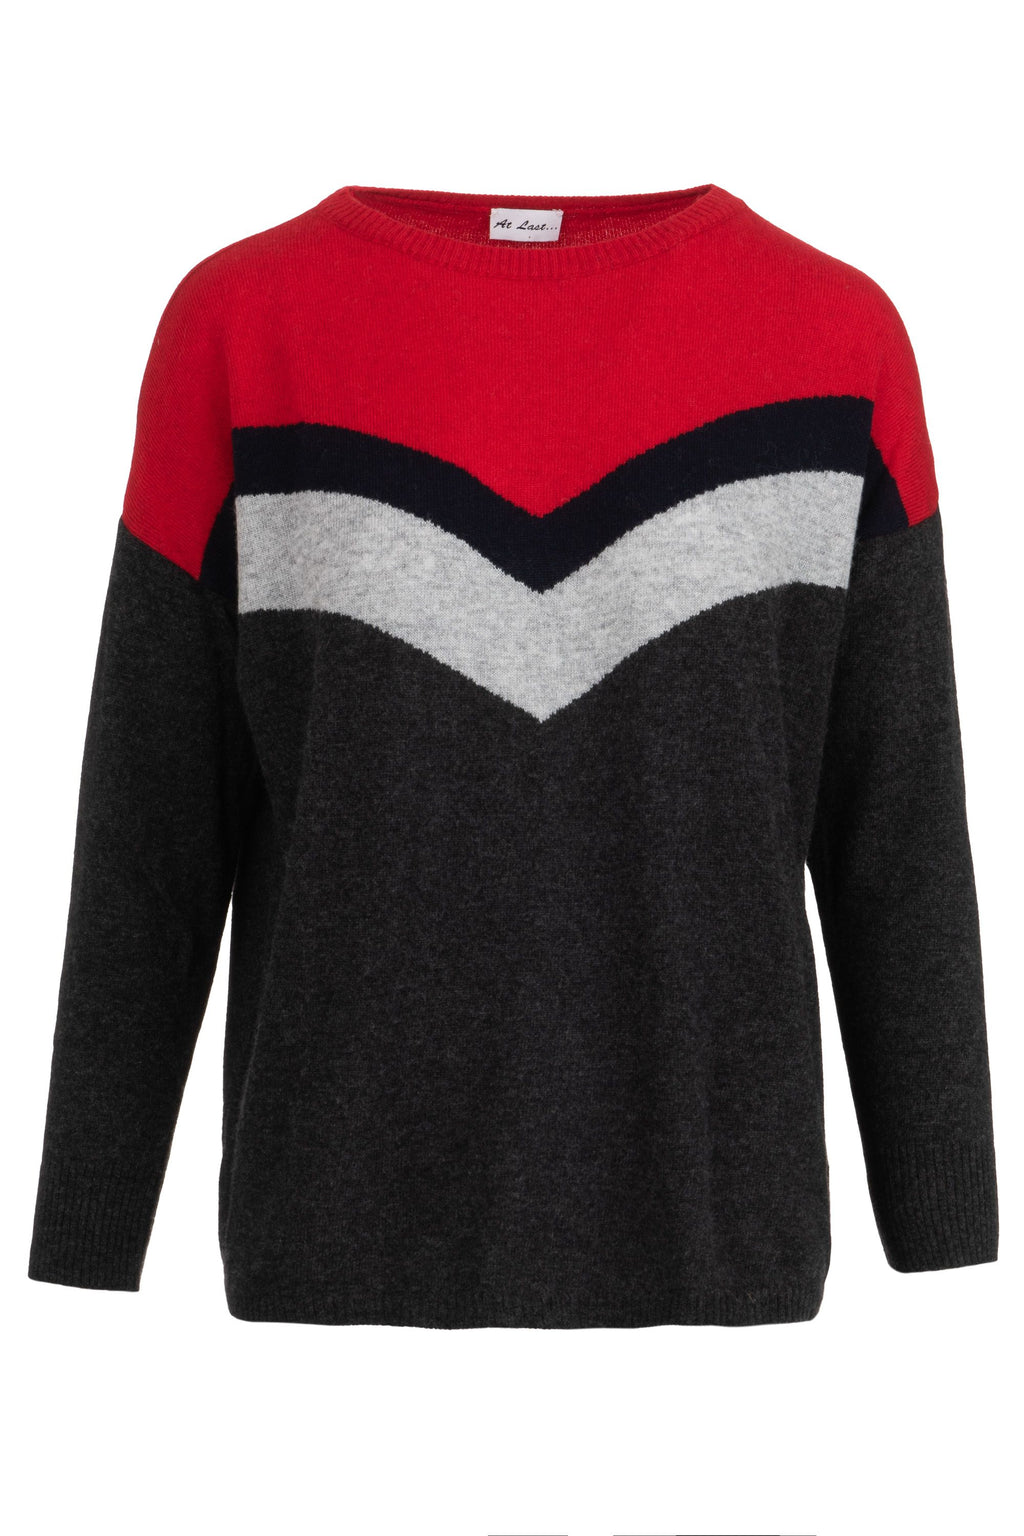 Cashmere sweater- Red and Charcoal Chevron